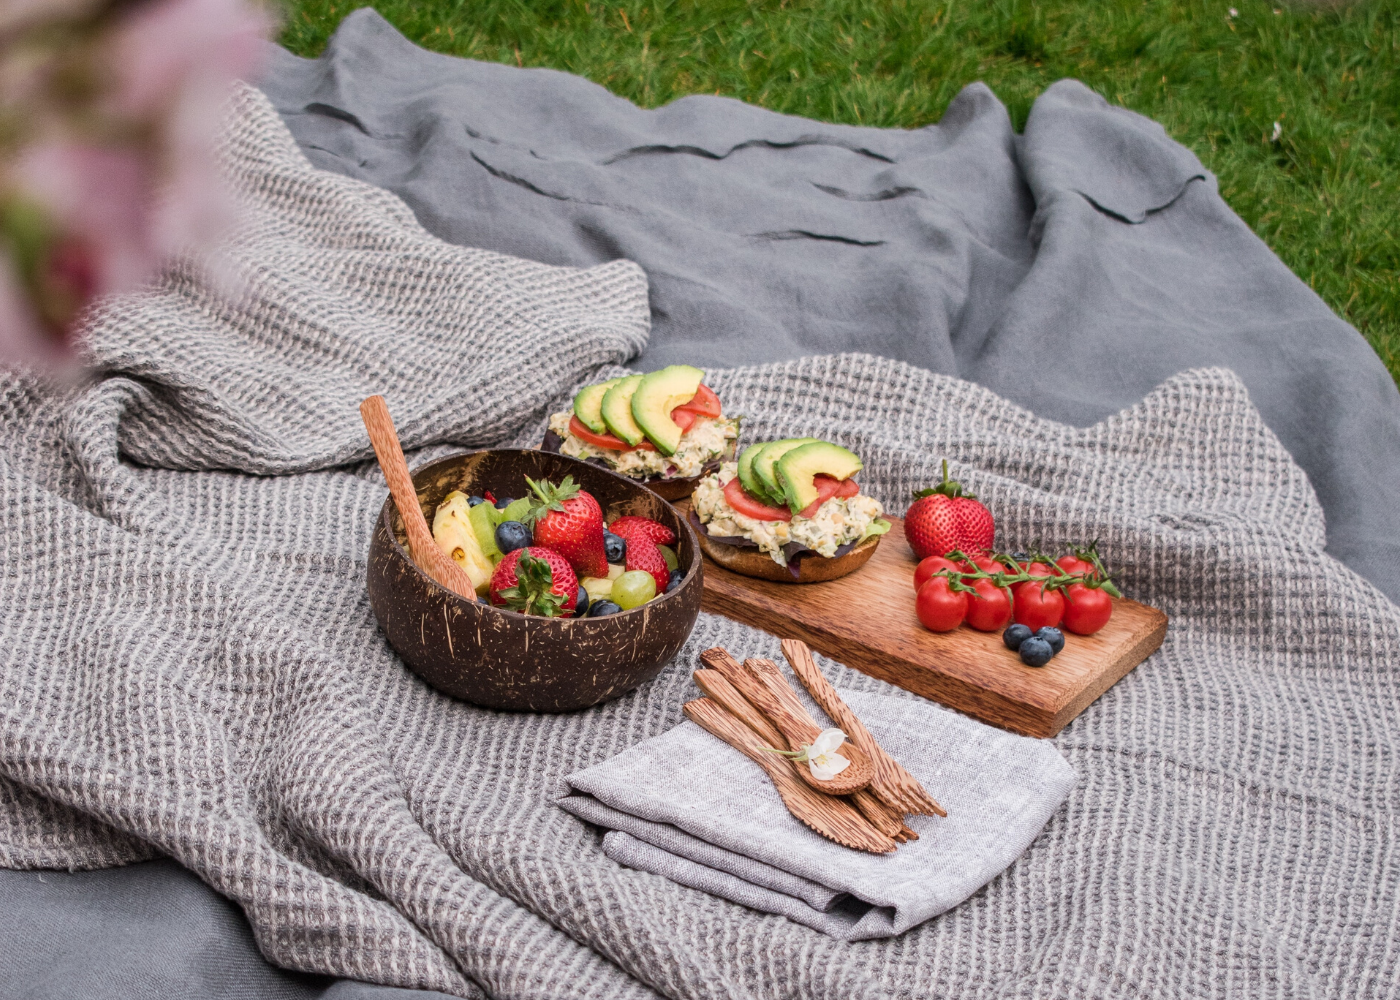 picnic food on grass